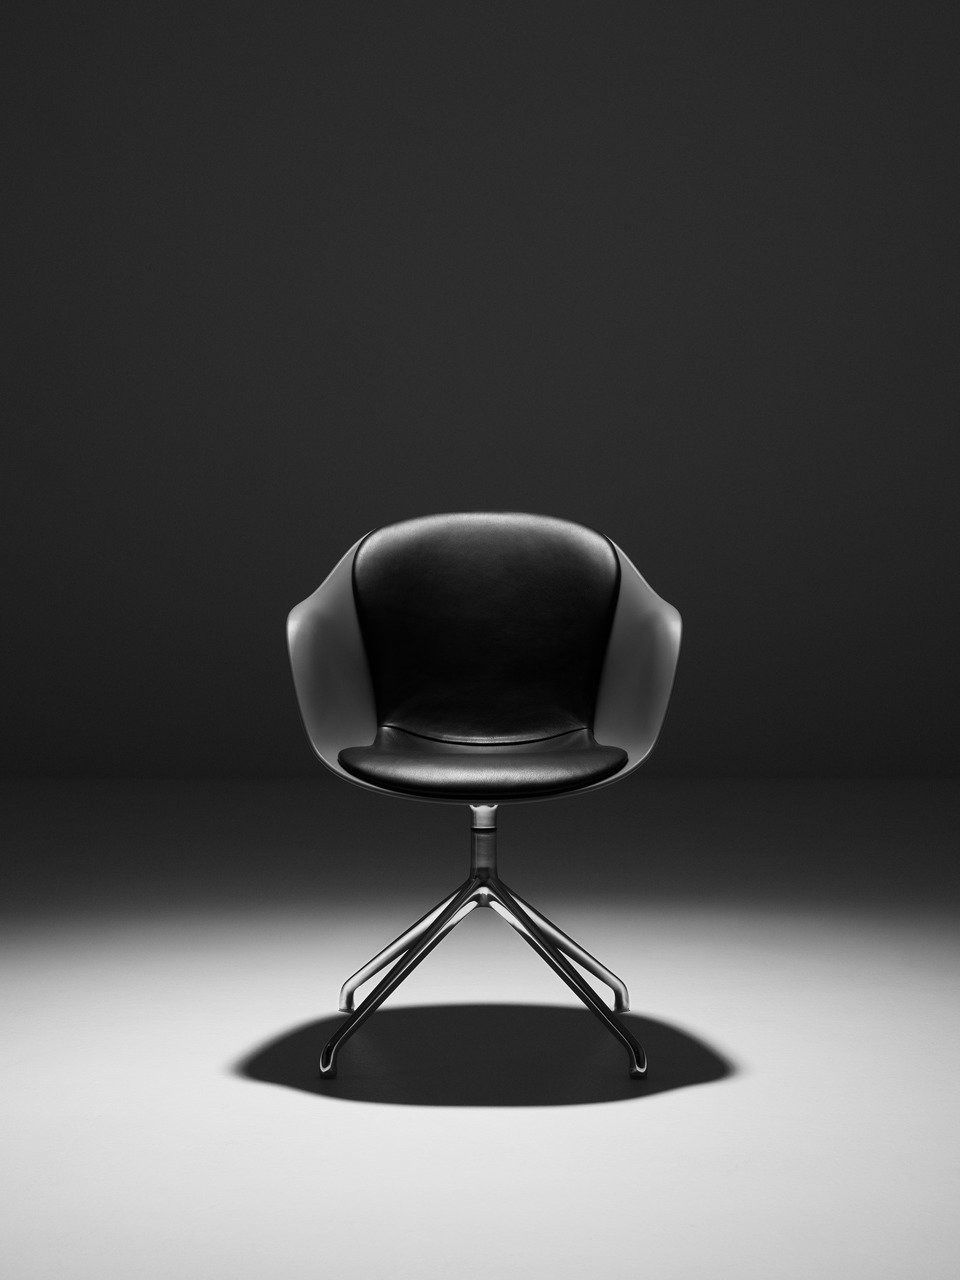 23134_Adelaide chair with swivel function_10002_3.jpg